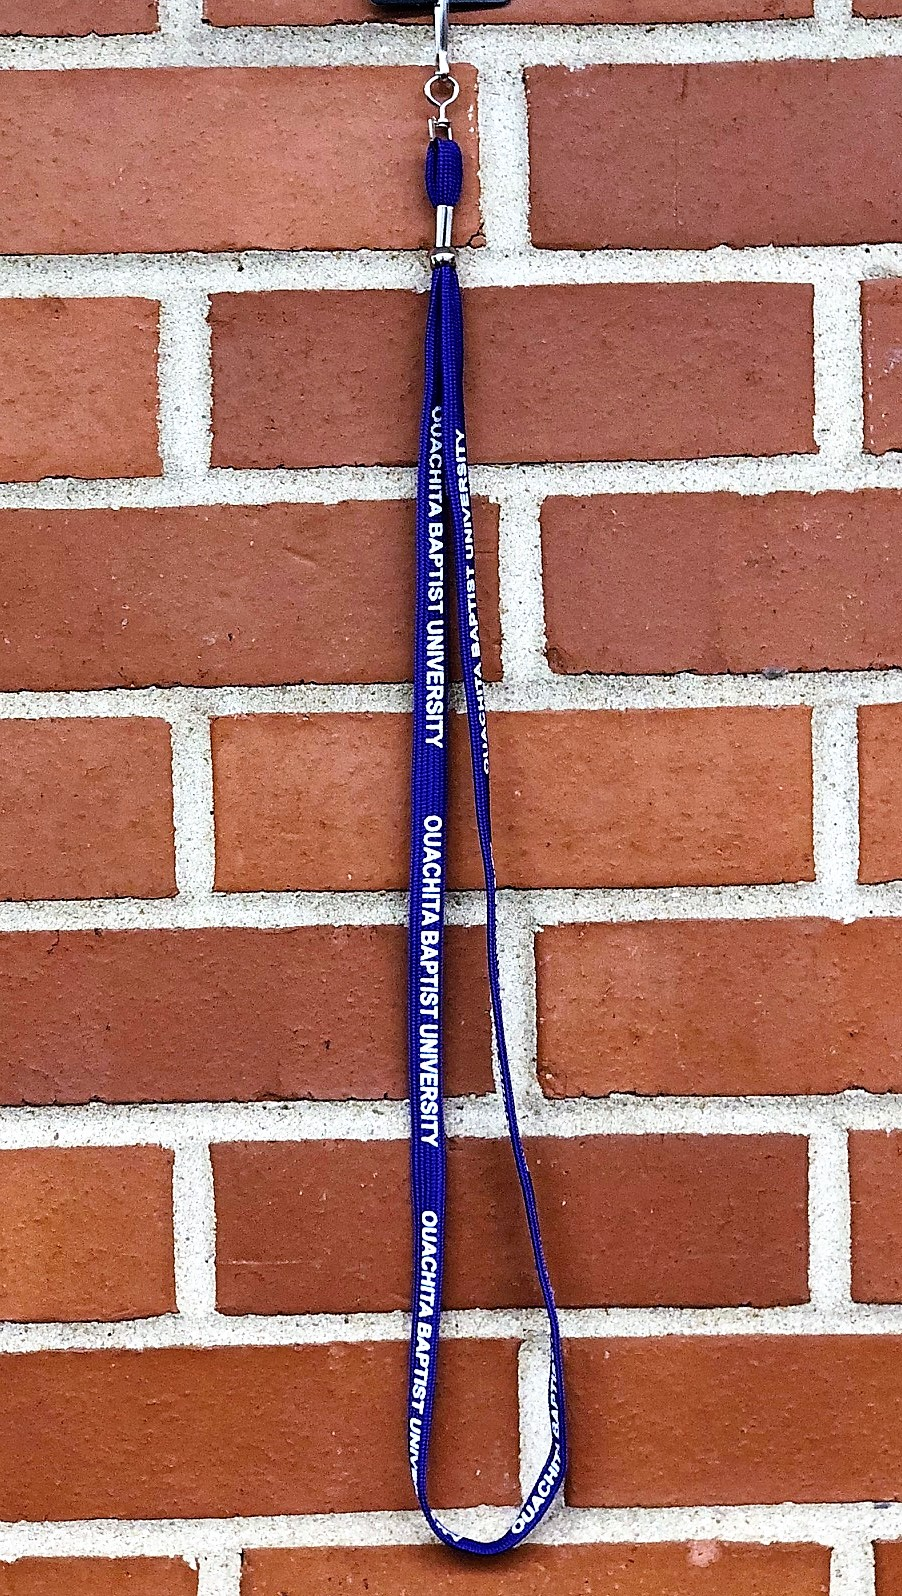 OUACHITA BAPTIST UNIVERSITY PRINTED LANYARD